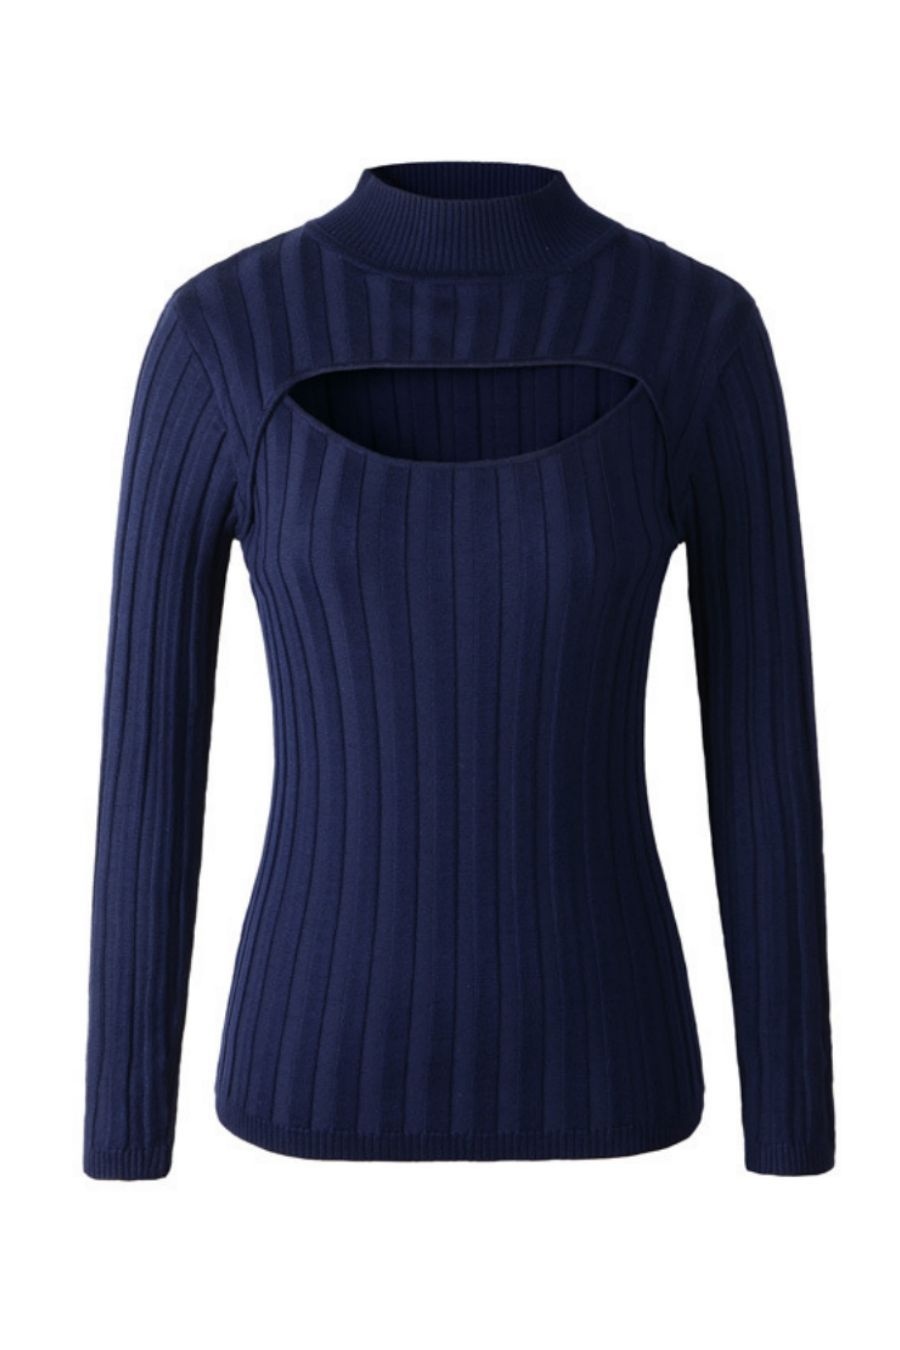 7e5fbe0b663 High-neck Open Chest Sweater in 2019